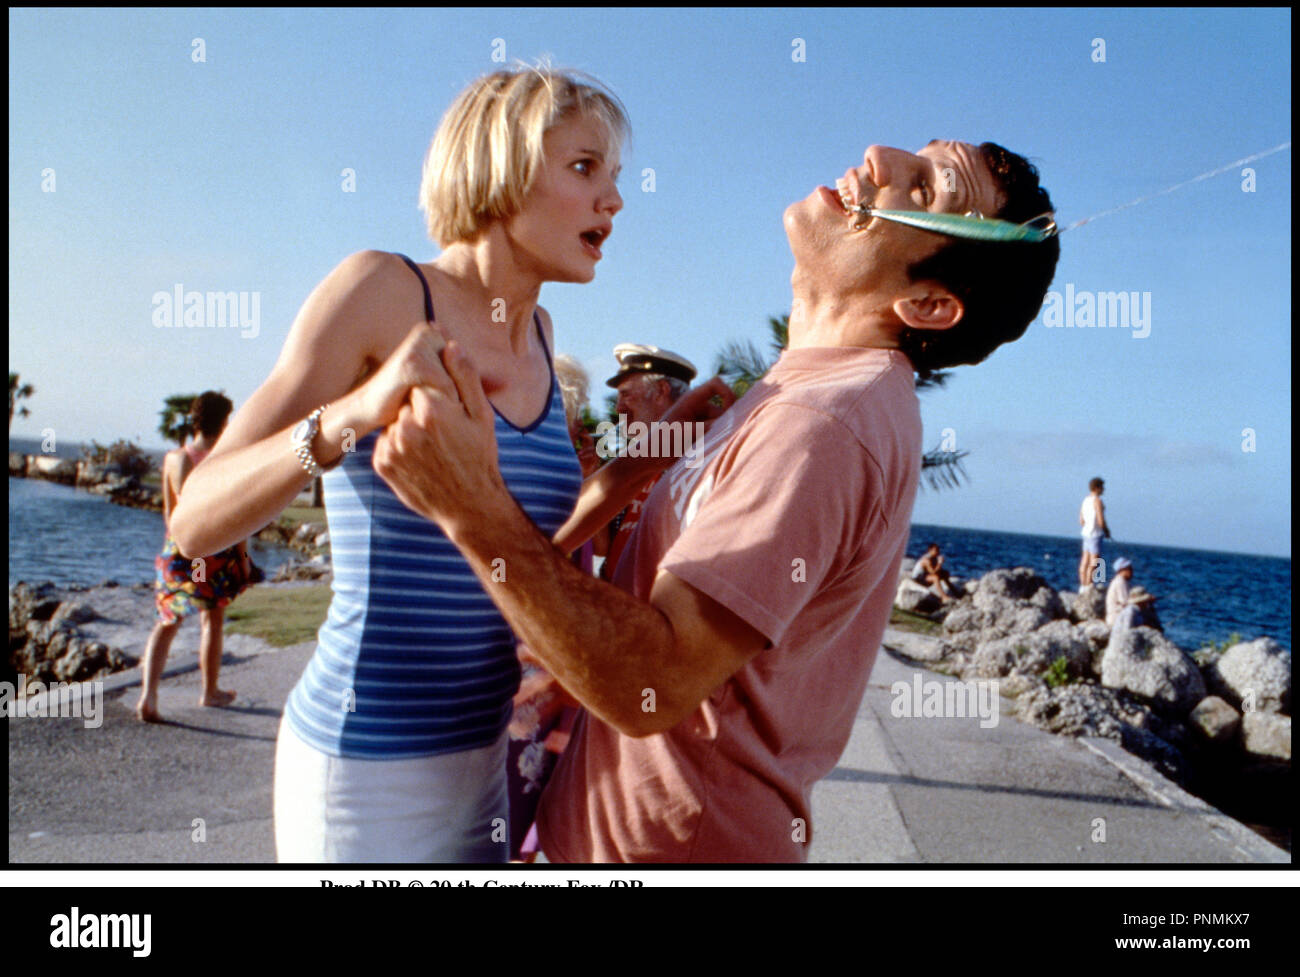 Prod DB © 20 th Century Fox /DR MARY A TOUT PRIX (THERE'S SOMETHING ABOUT MARY) de Bobby et Peter Farrelly 1998 USA avec Cameron Diaz et Ben Stiller hamecon, canne a peche, mal a la bouche, dentiste, - Stock Image